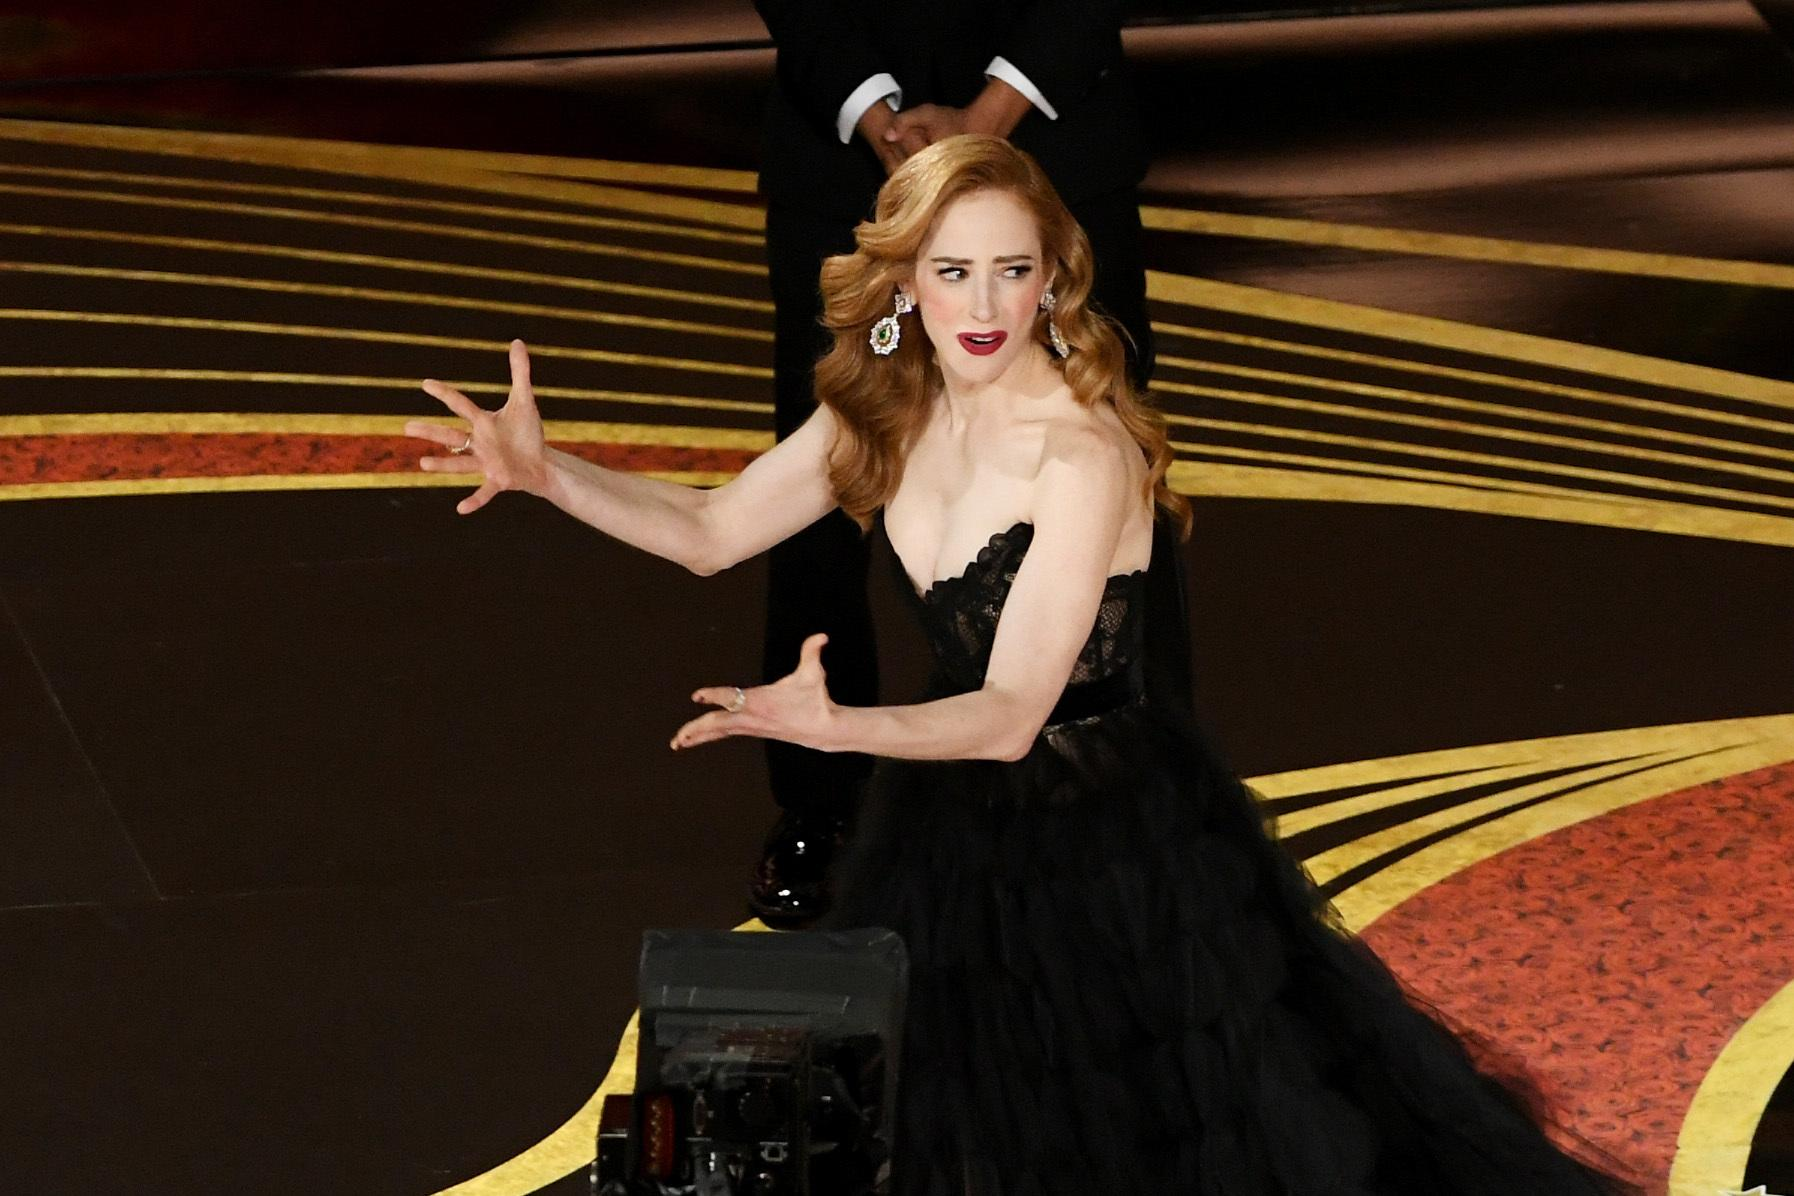 HOLLYWOOD, CALIFORNIA - FEBRUARY 24: Jaime Ray Newman accepts the Best Live Action Short Film award for 'Skin' onstage during the 91st Annual Academy Awards at Dolby Theatre on February 24, 2019 in Hollywood, California. (Photo by Kevin Winter/Getty Images)